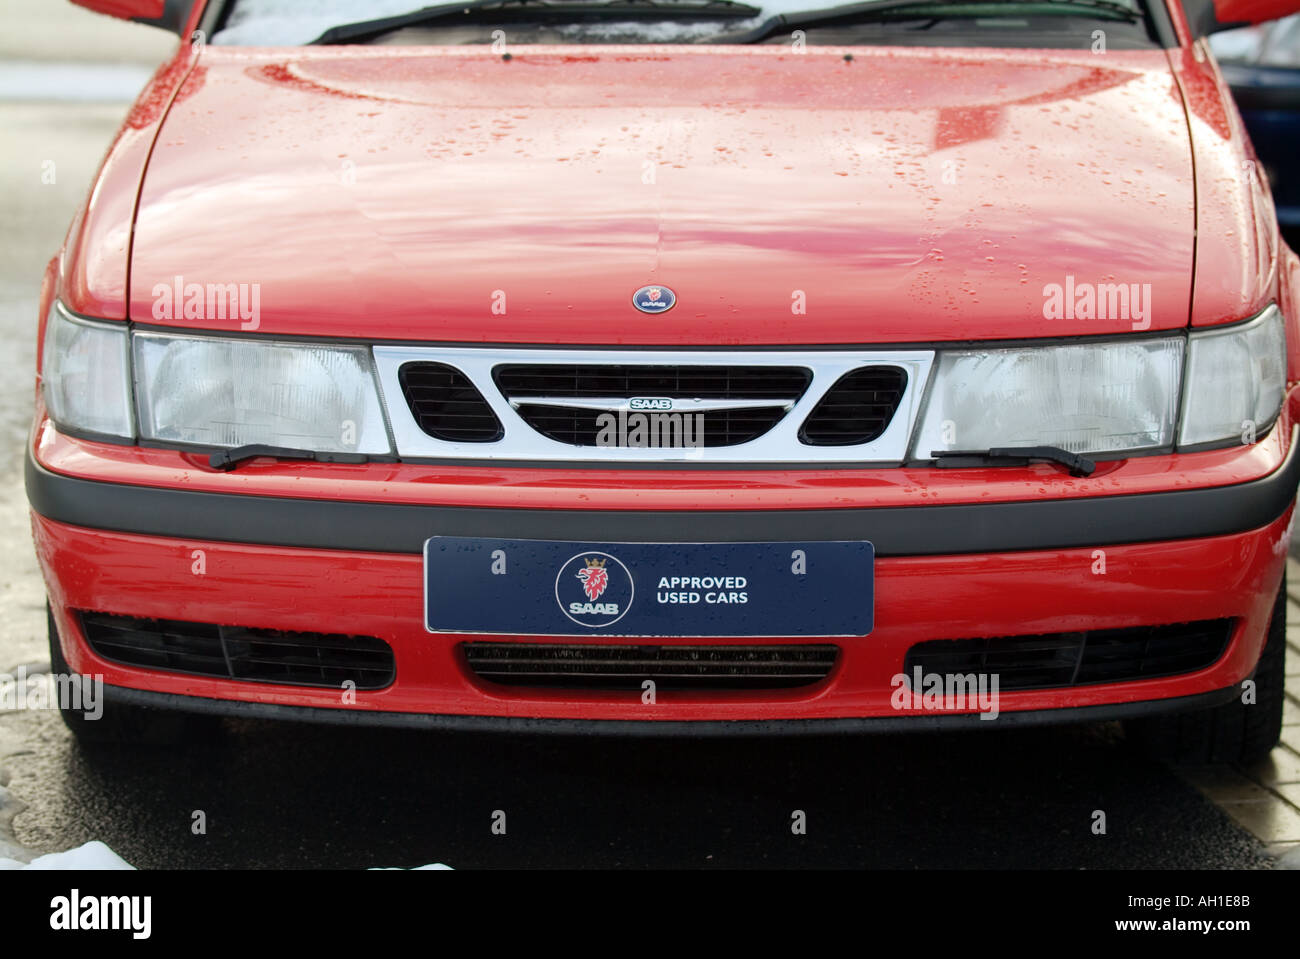 Saab 9 3 sweden swedish car maker manufacturer general for General motors cars brands